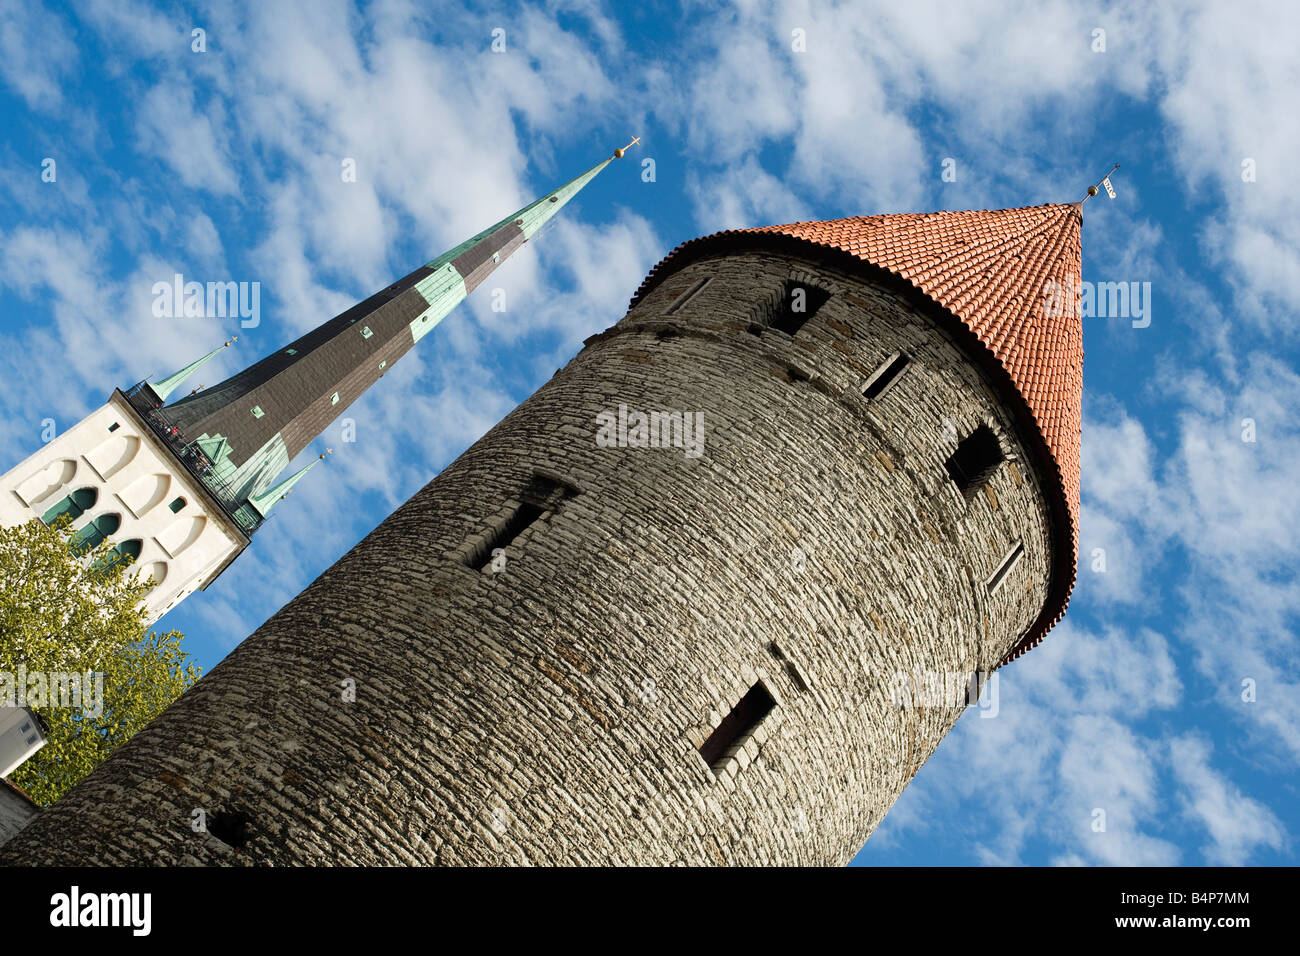 Town wall tower and church of St. Olaf steeple, old town, Tallinn, Estonia - Stock Image